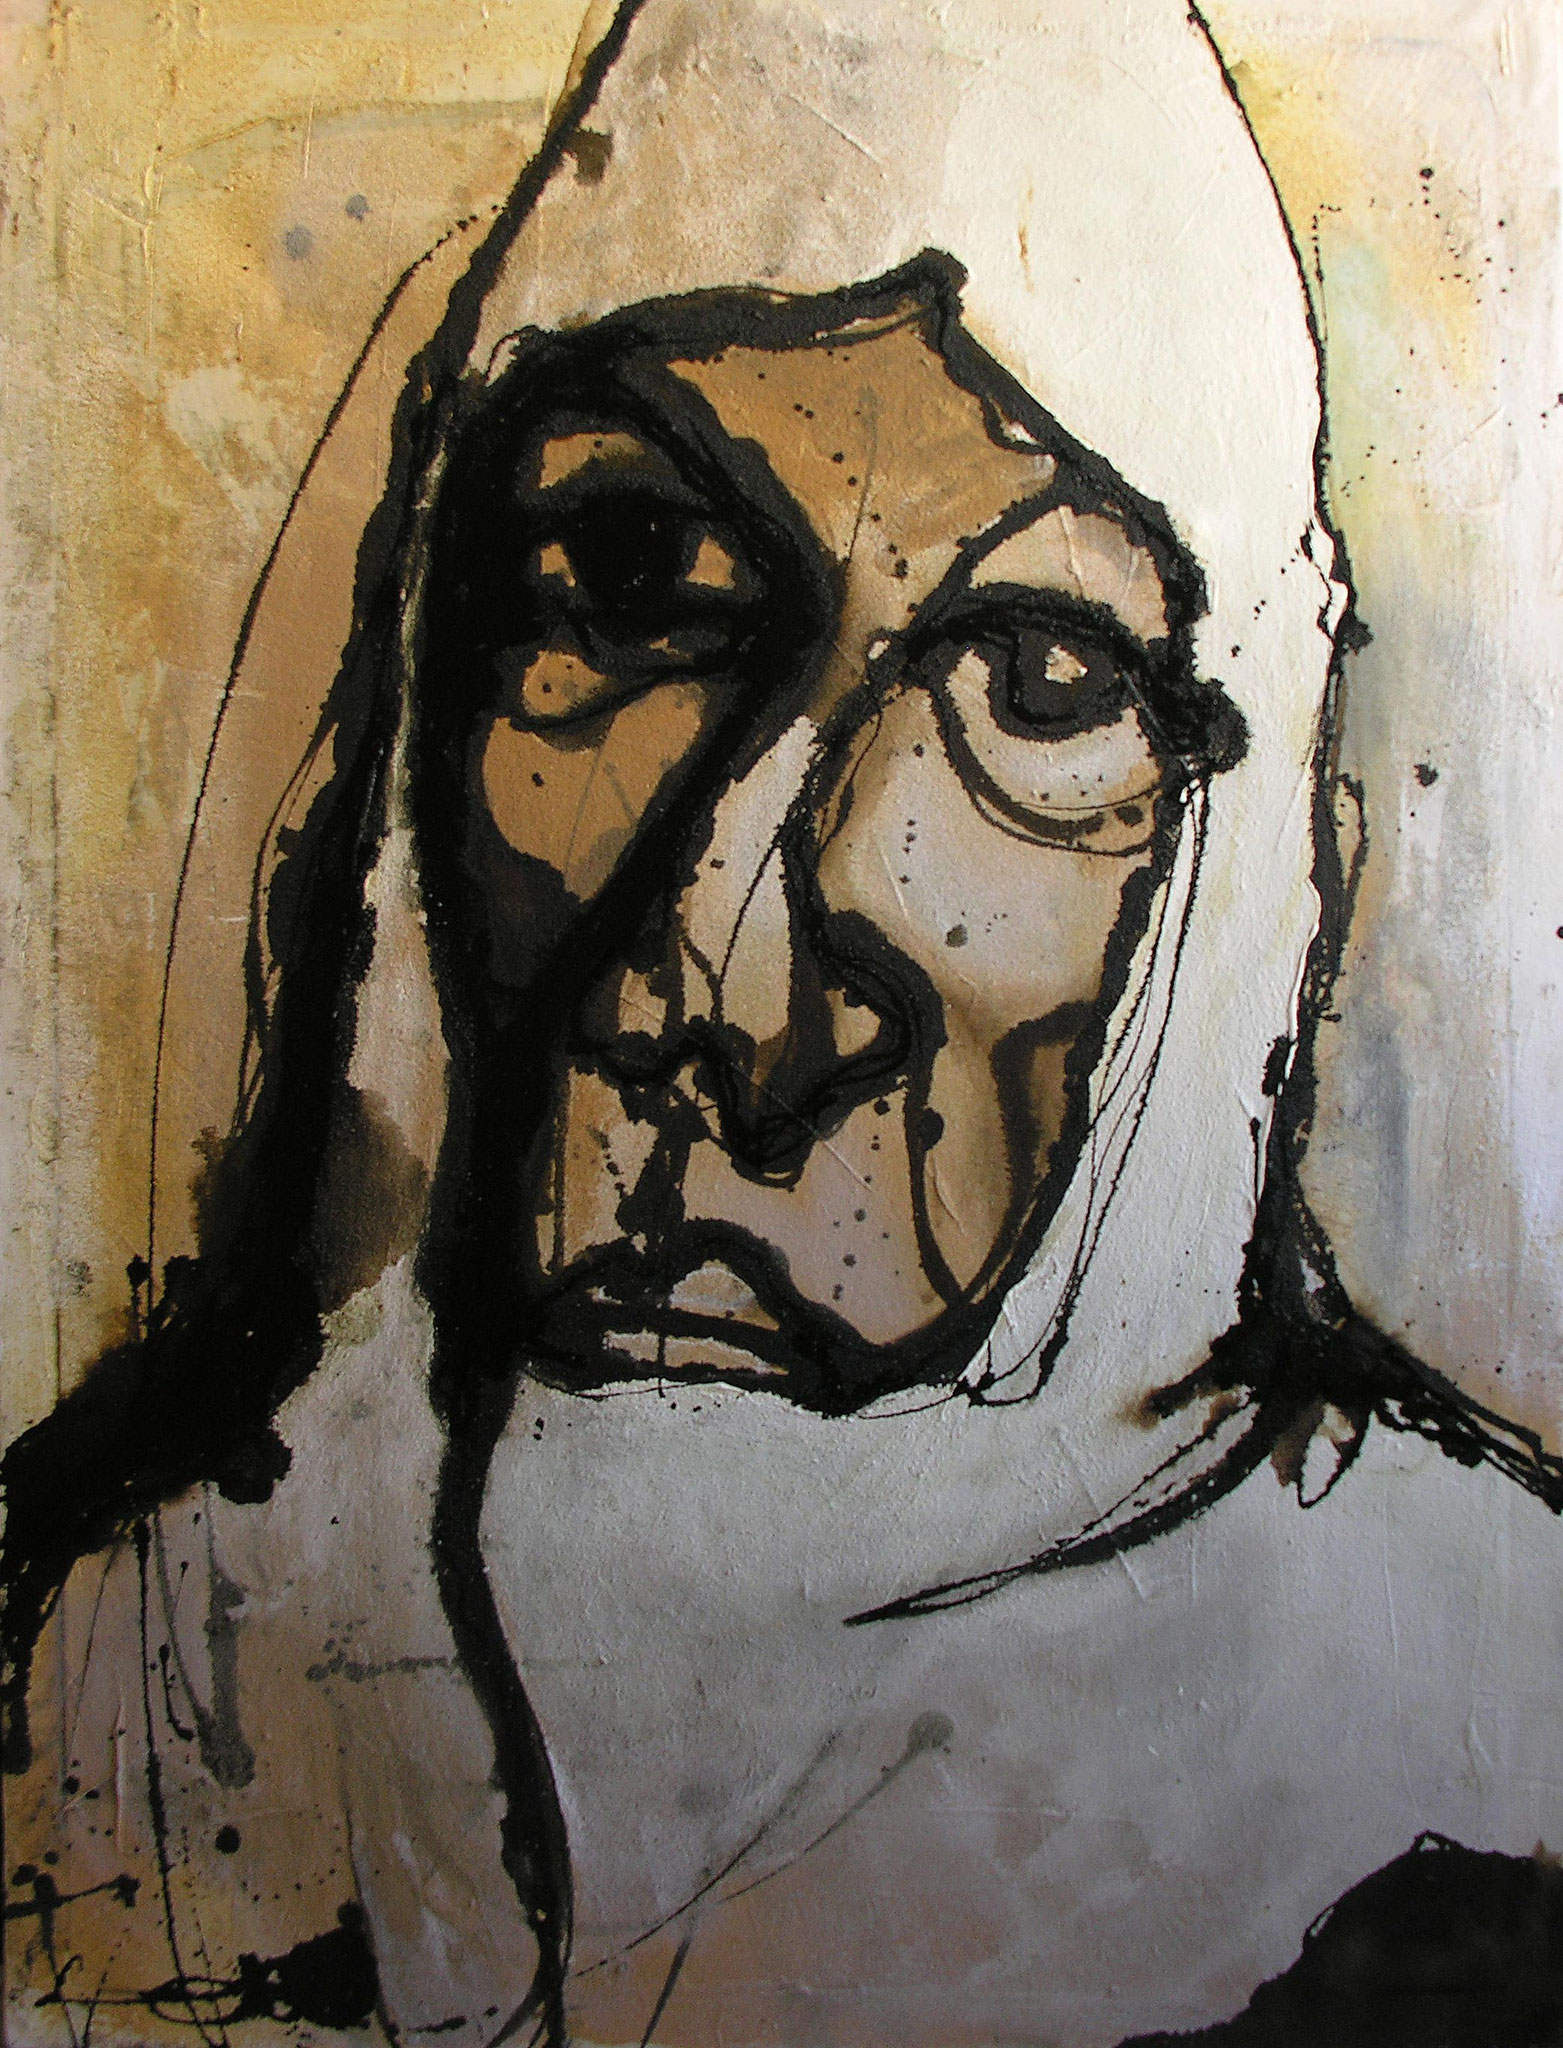 Woman, Mixed Media on canvas, 120 x 162 cm, 2000